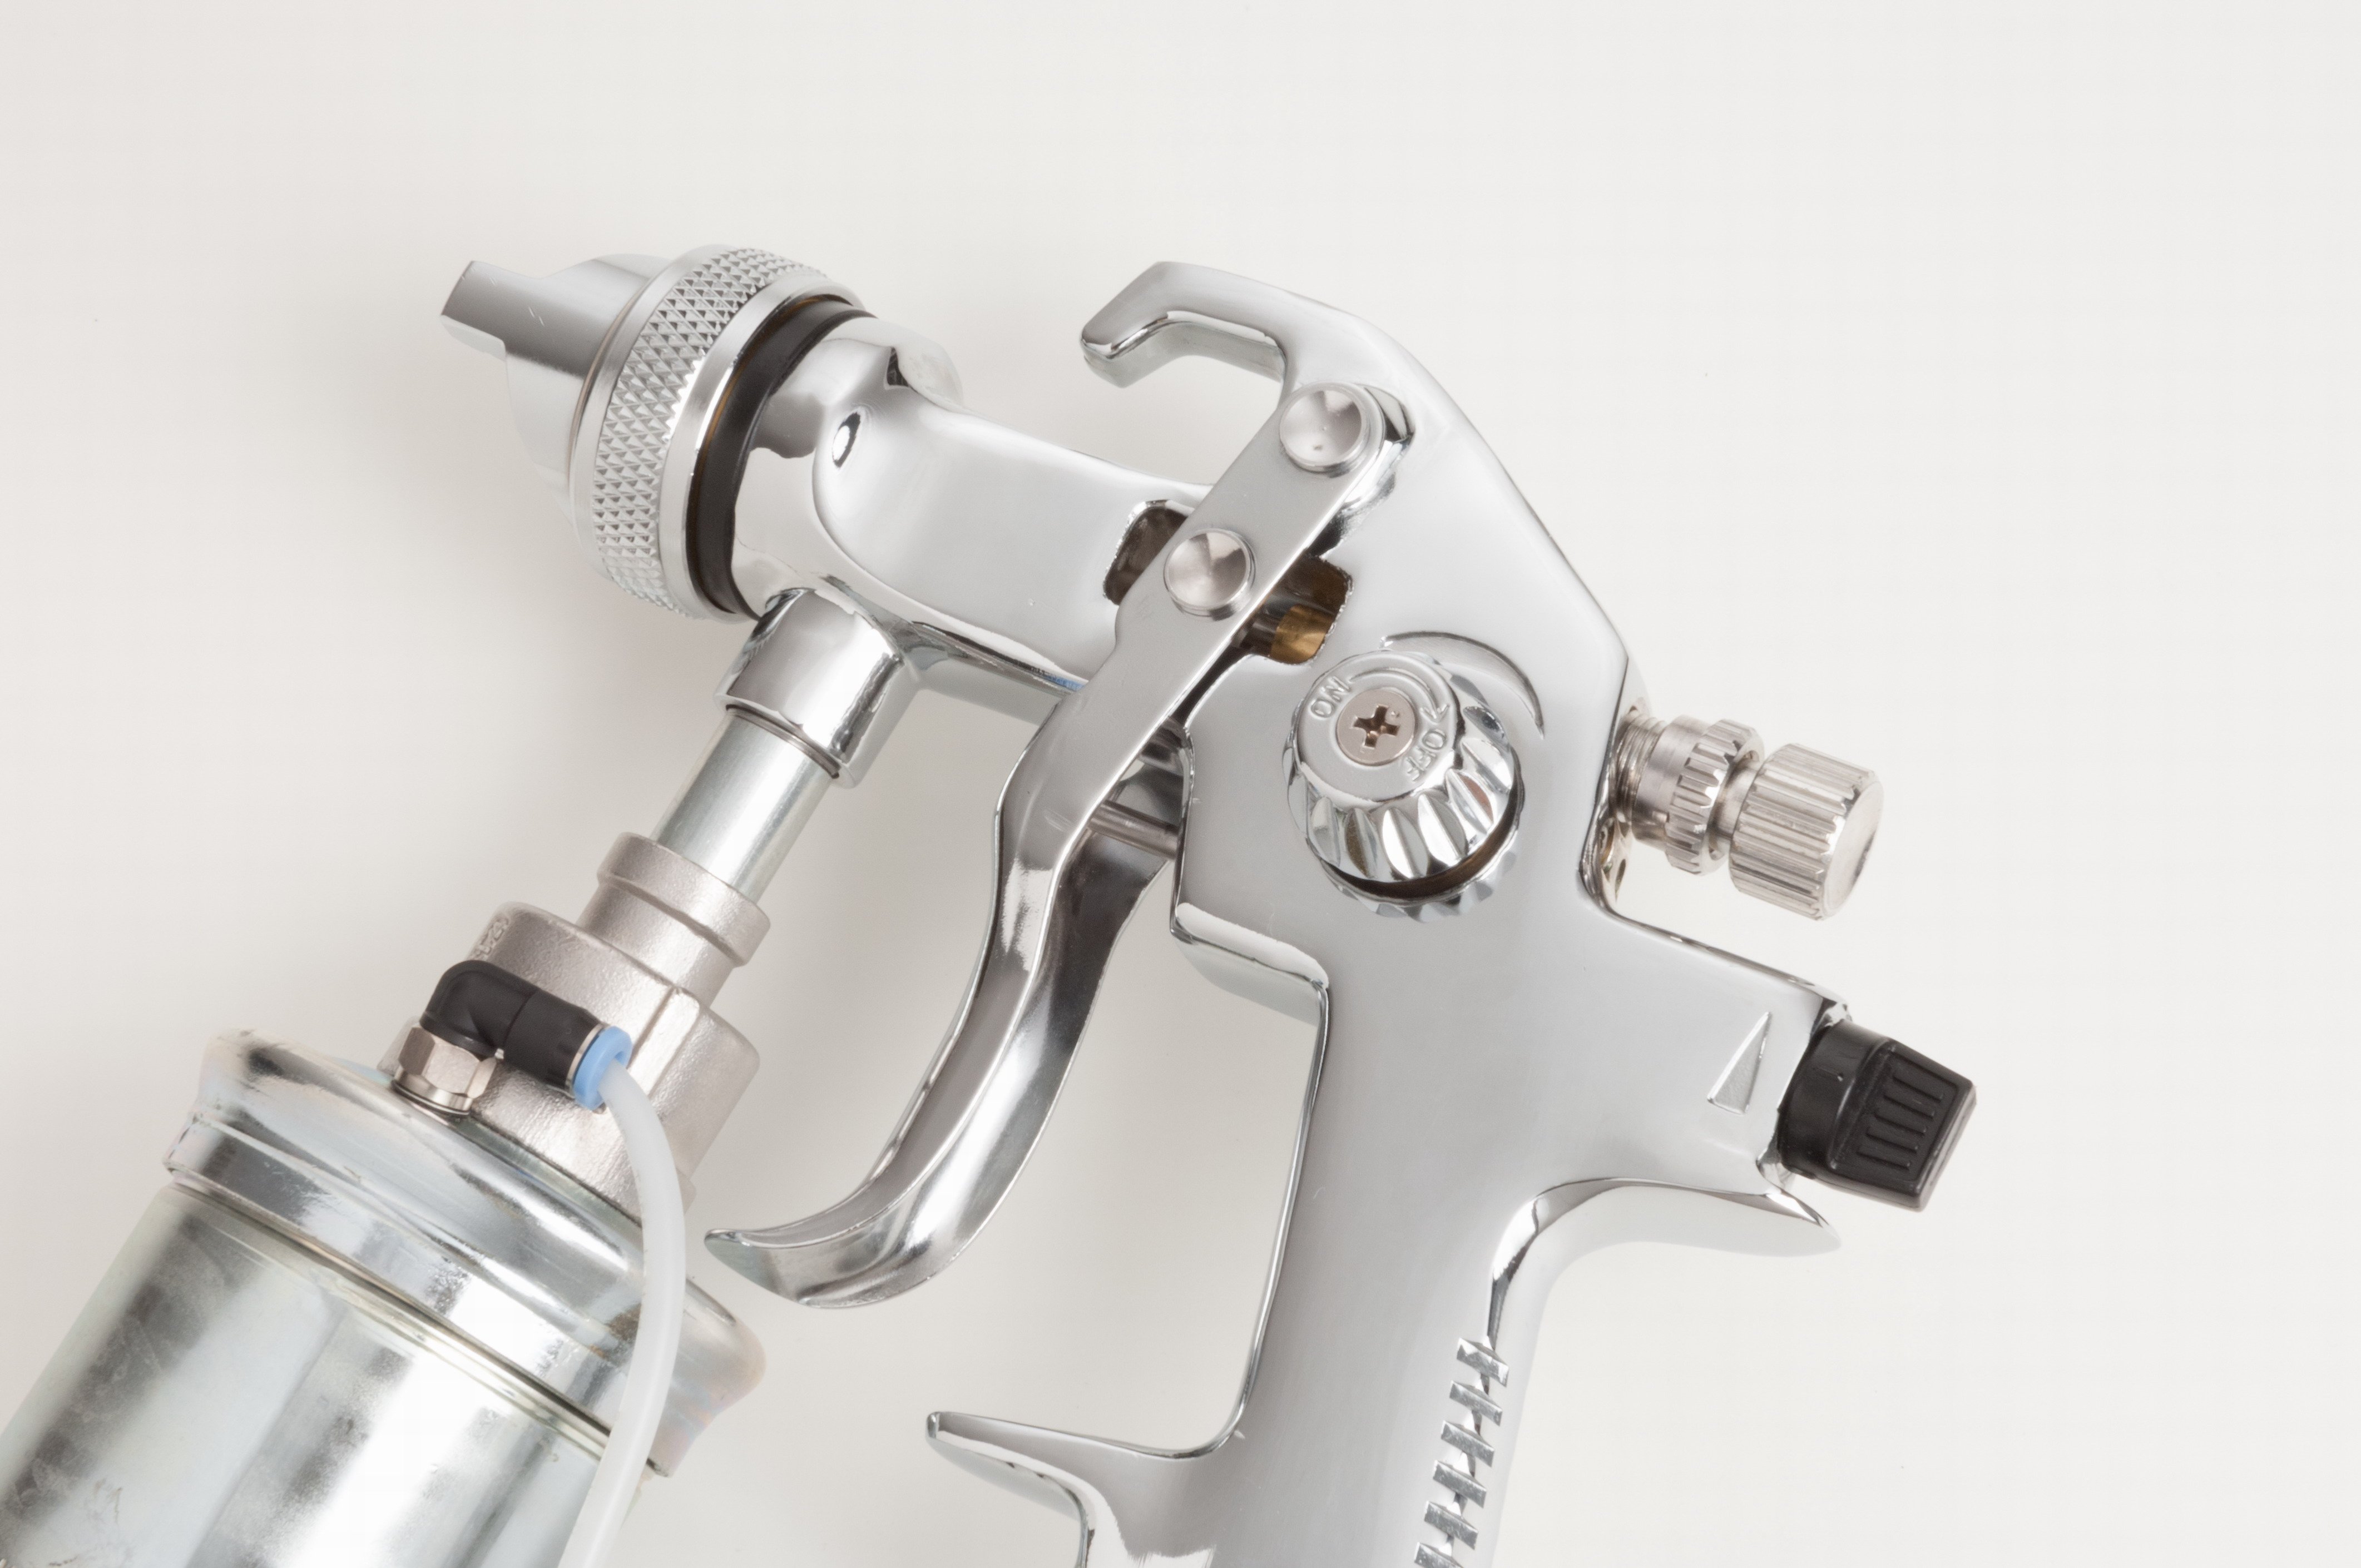 Pneumatic Grease Gun >> New Economical Spray Lube Options from Beka-Lube Products ...